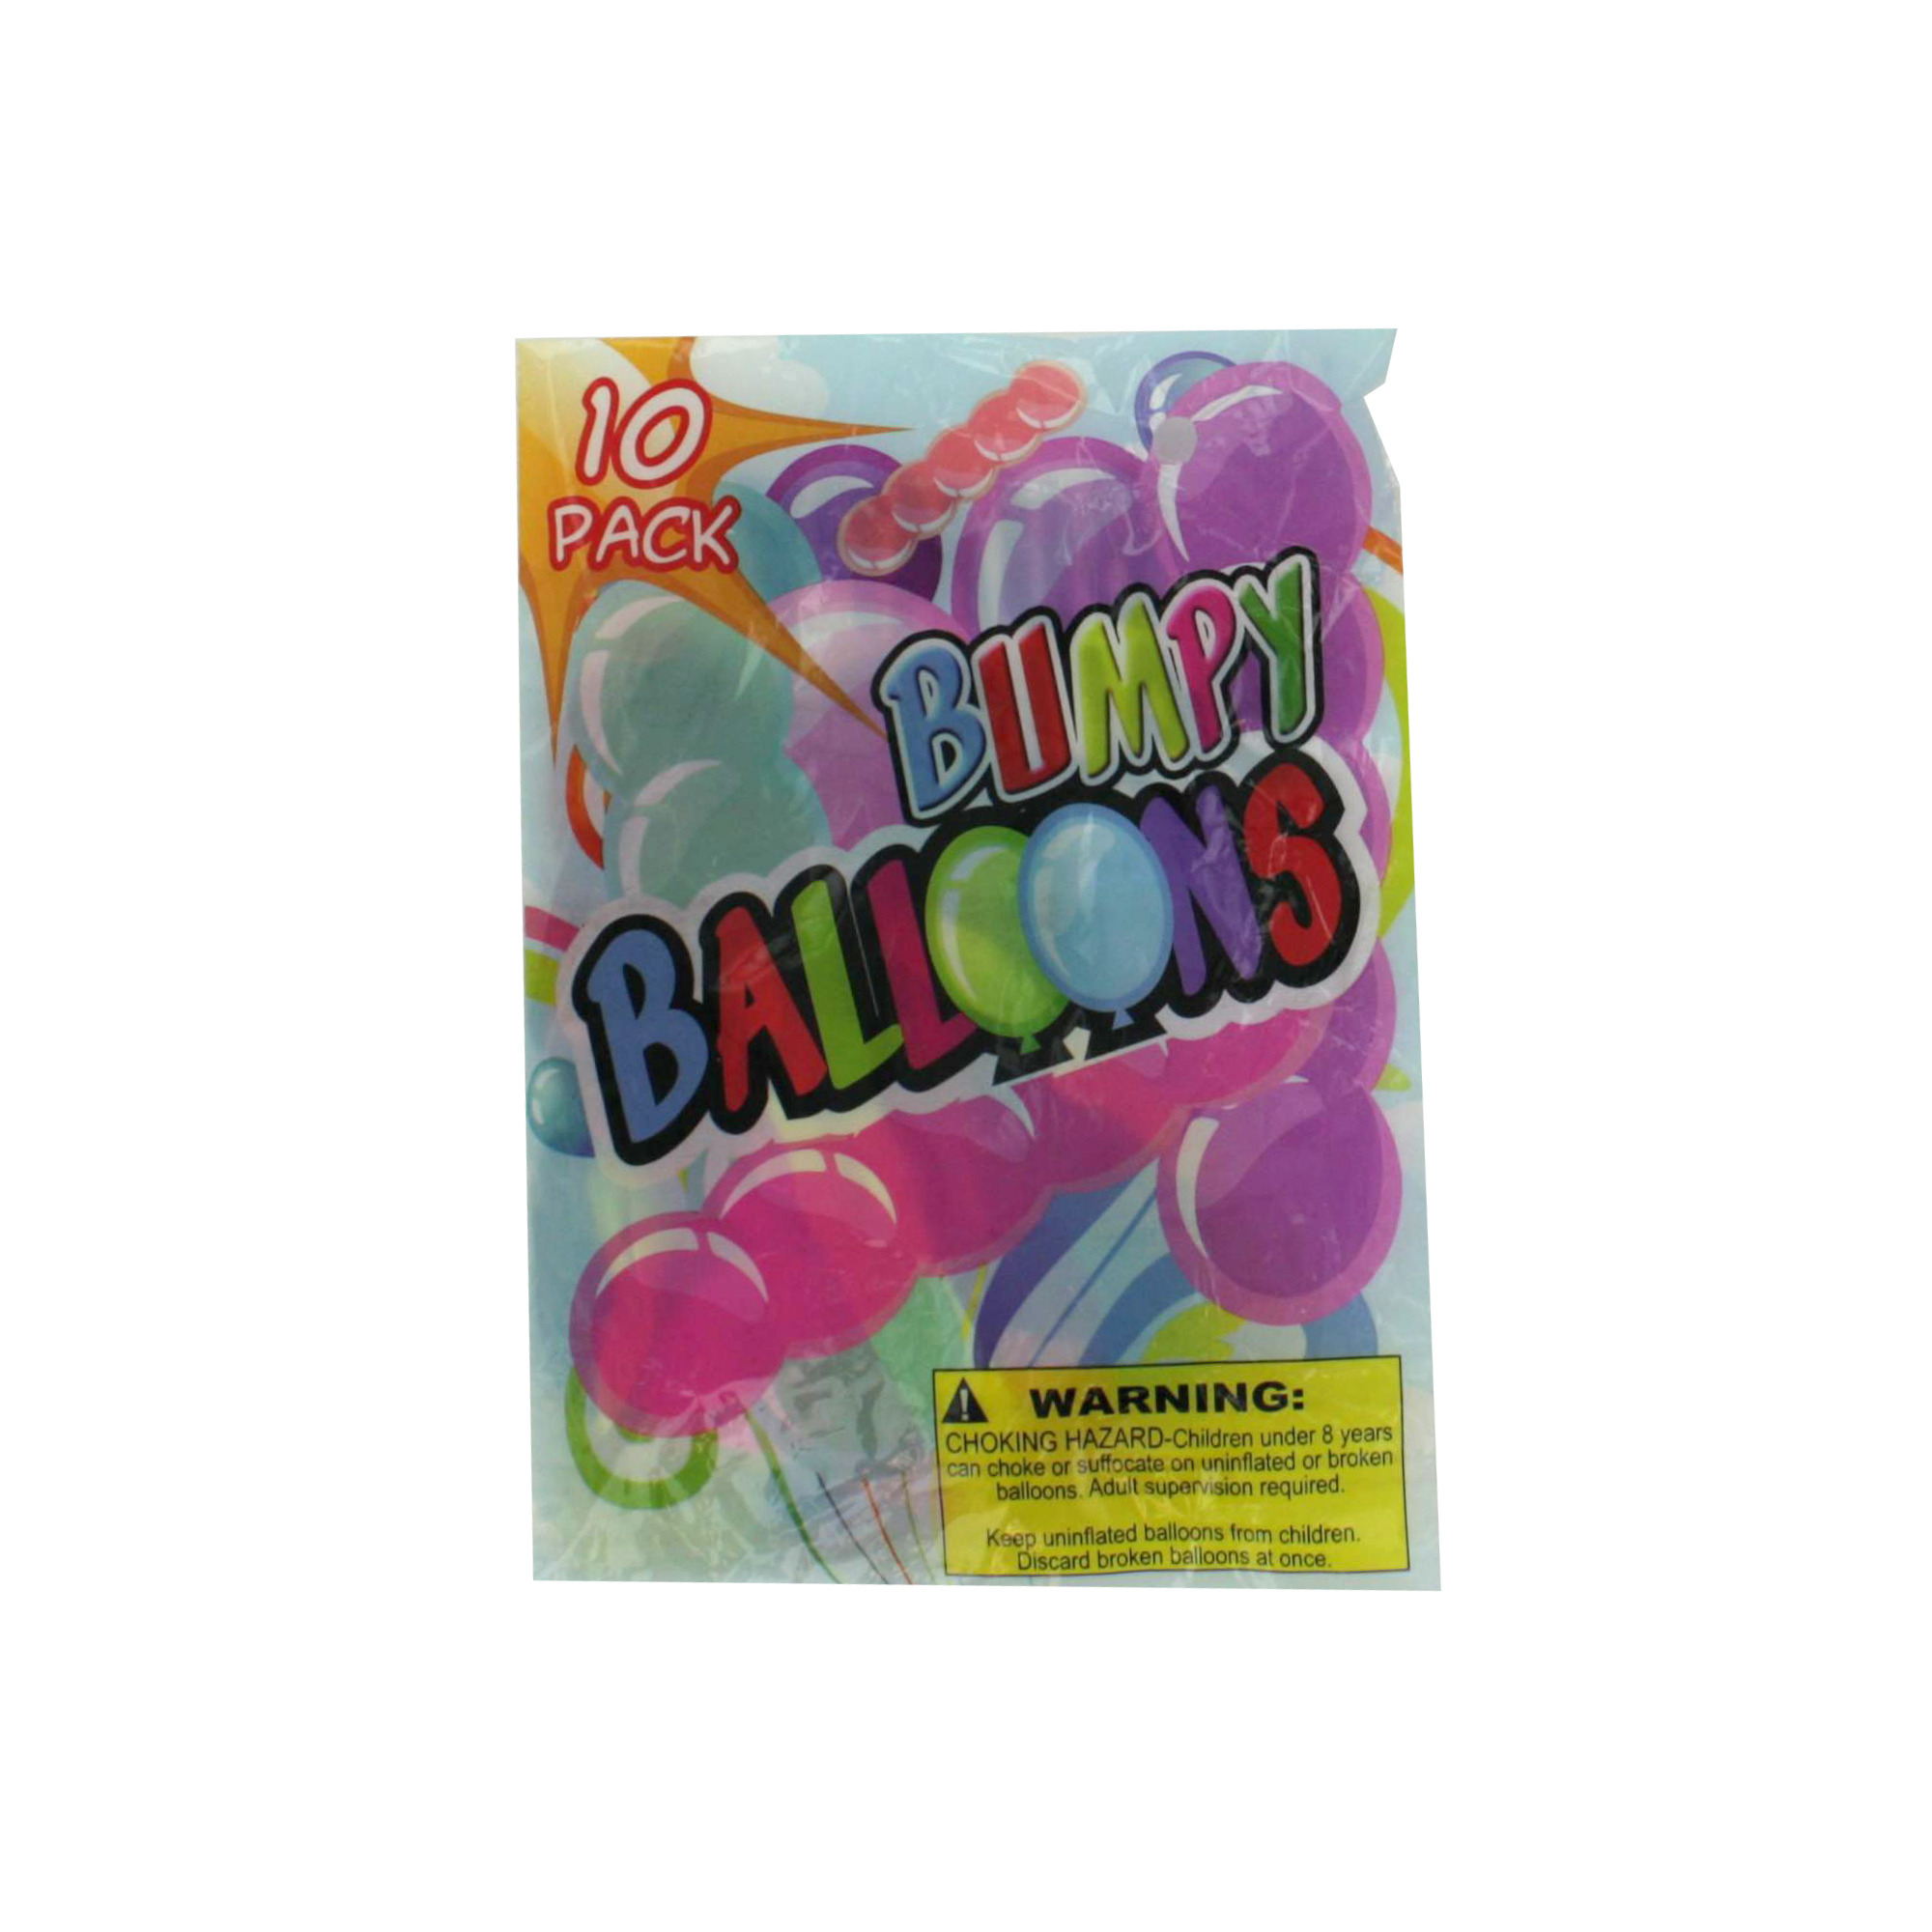 Wholesale Giant Bumpy Balloons